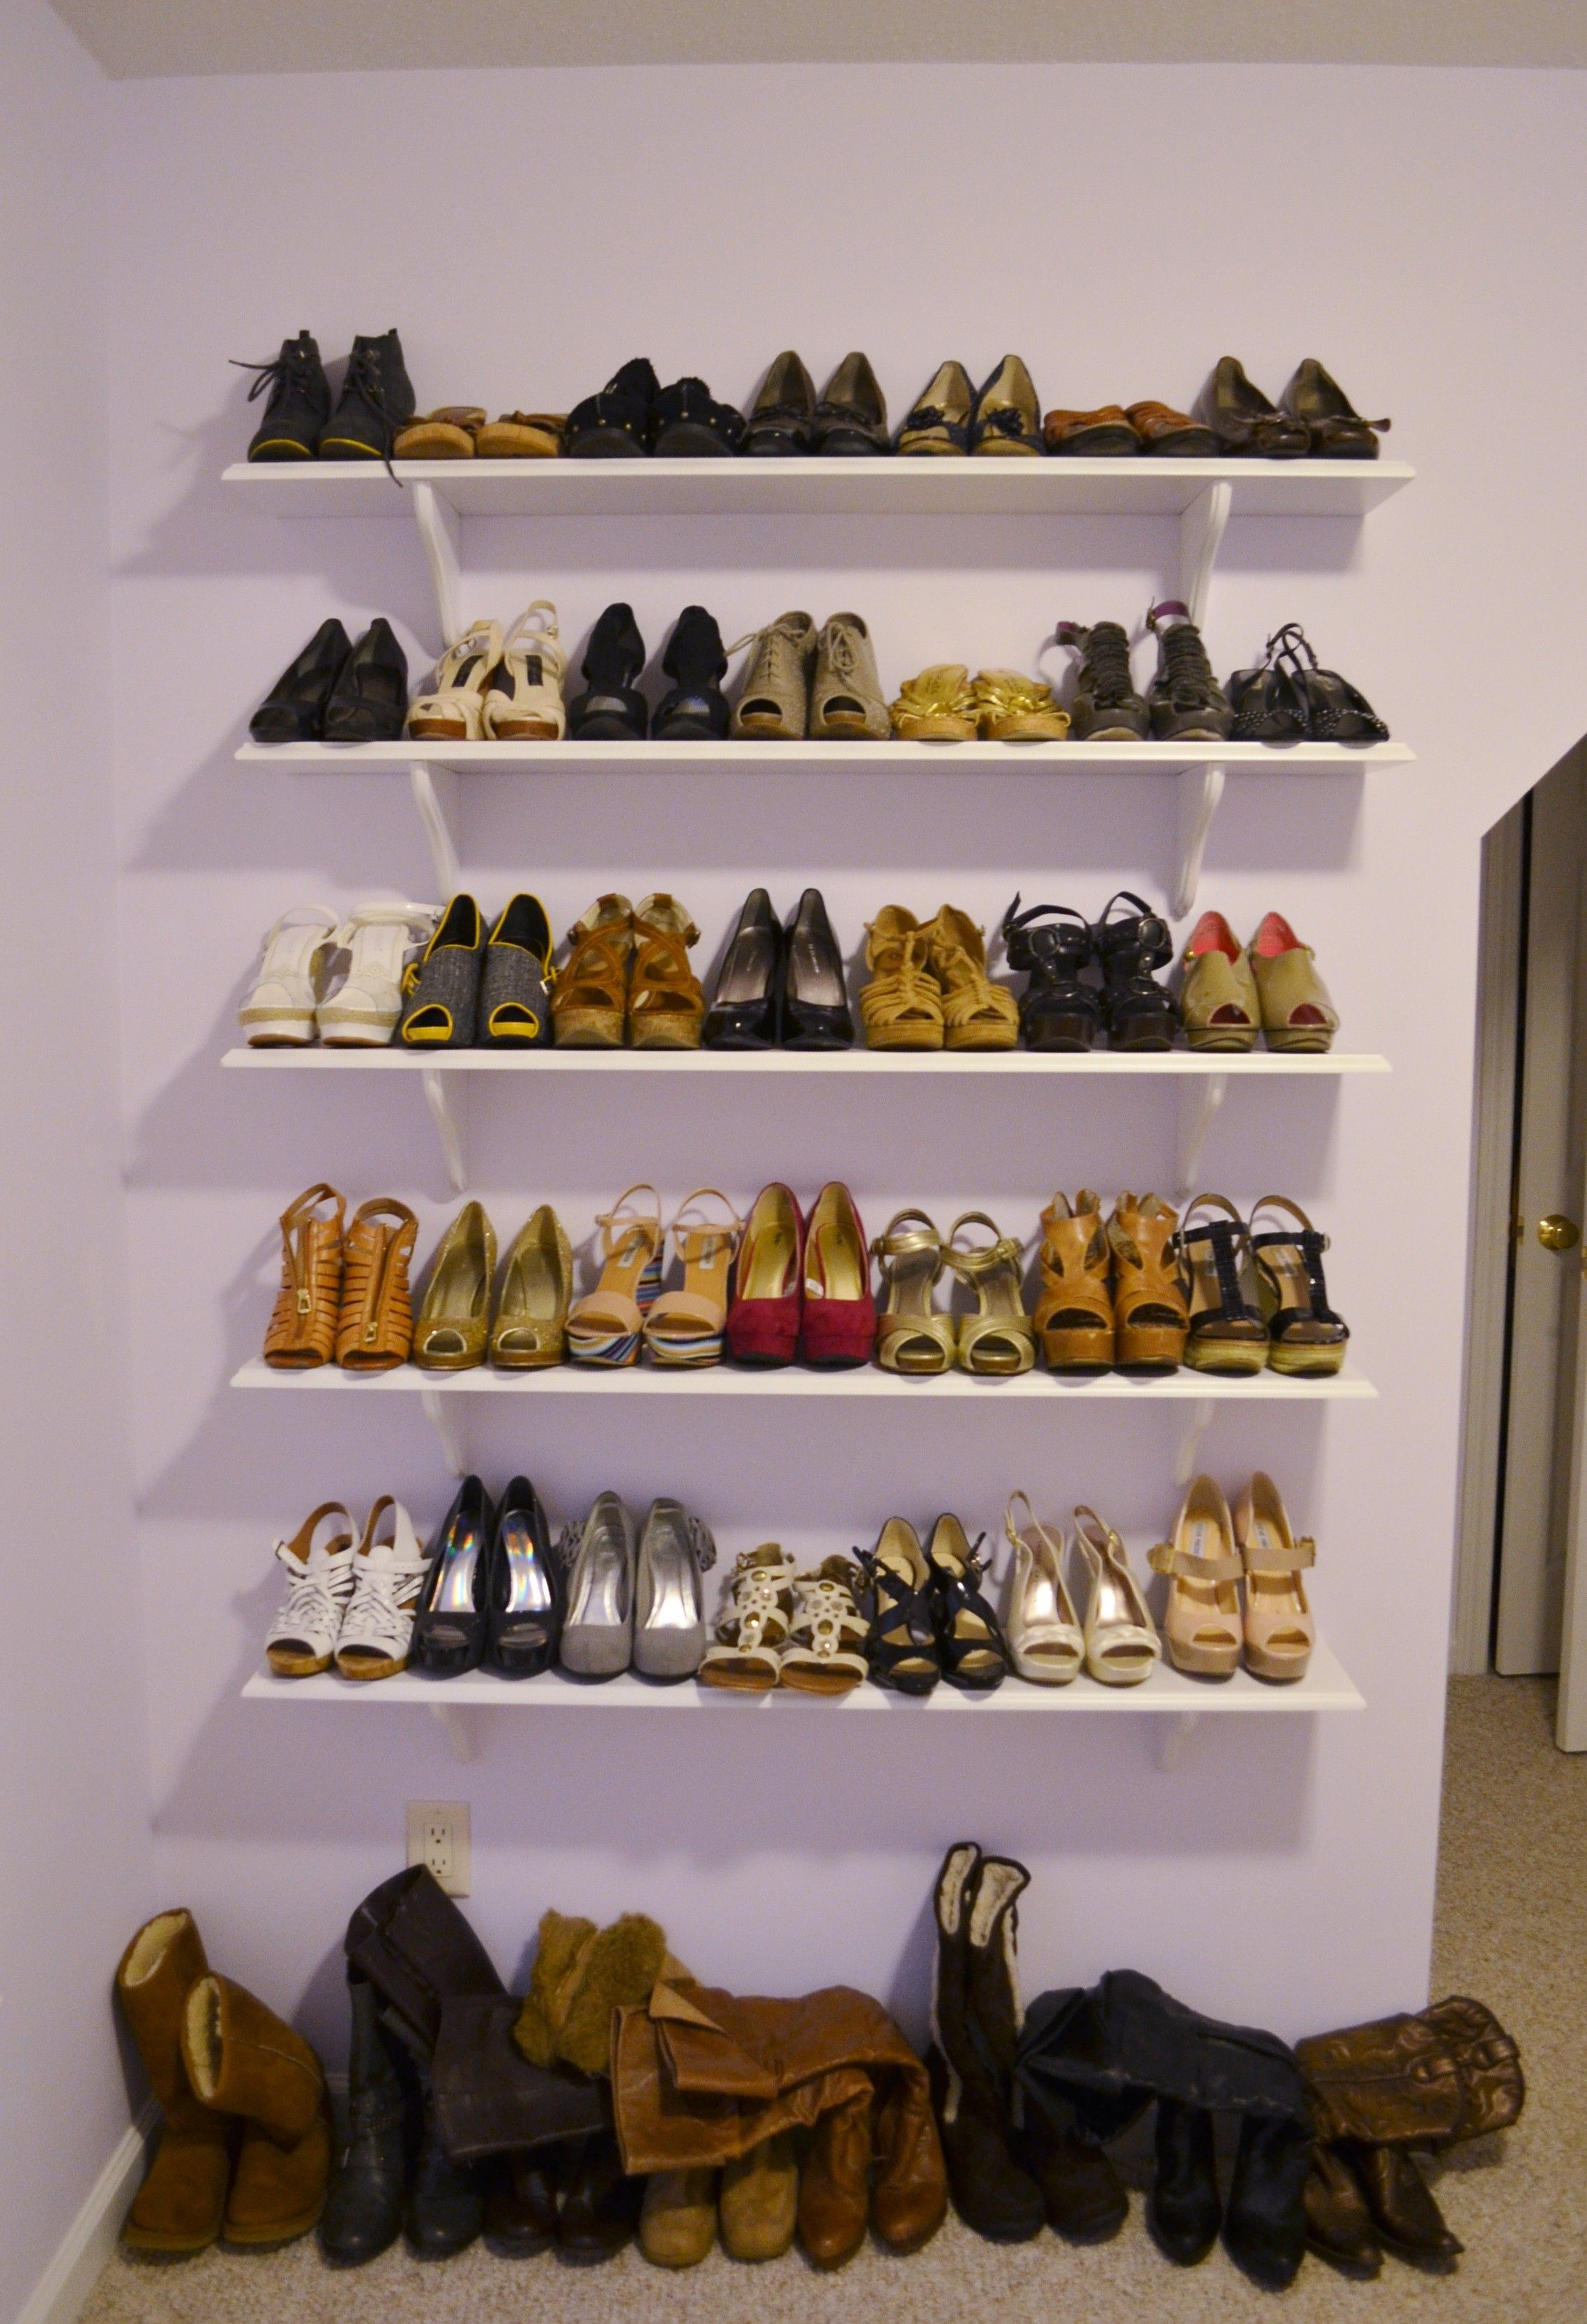 interior marvelous floating boot rack ideas with 5 level wooden shelves concept for shoe storage in closet ideas - Marvellous Closet Shoe Storage Ideas